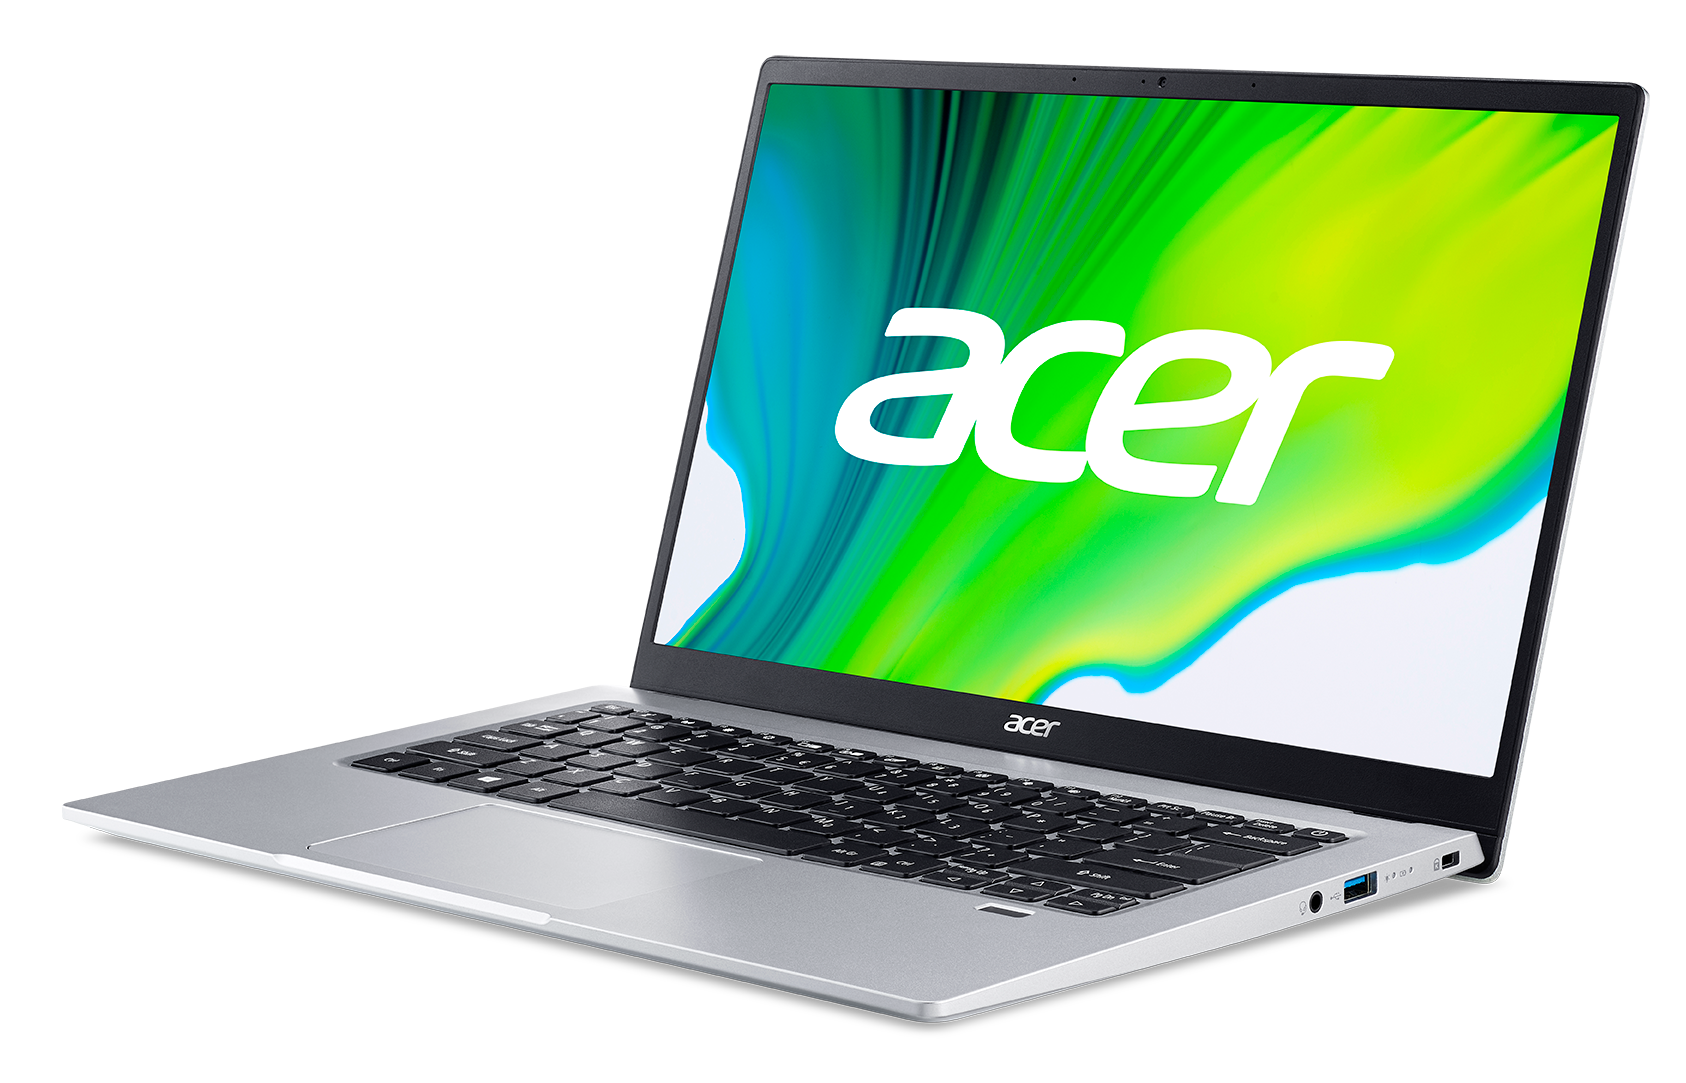 The Acer Swift 1.